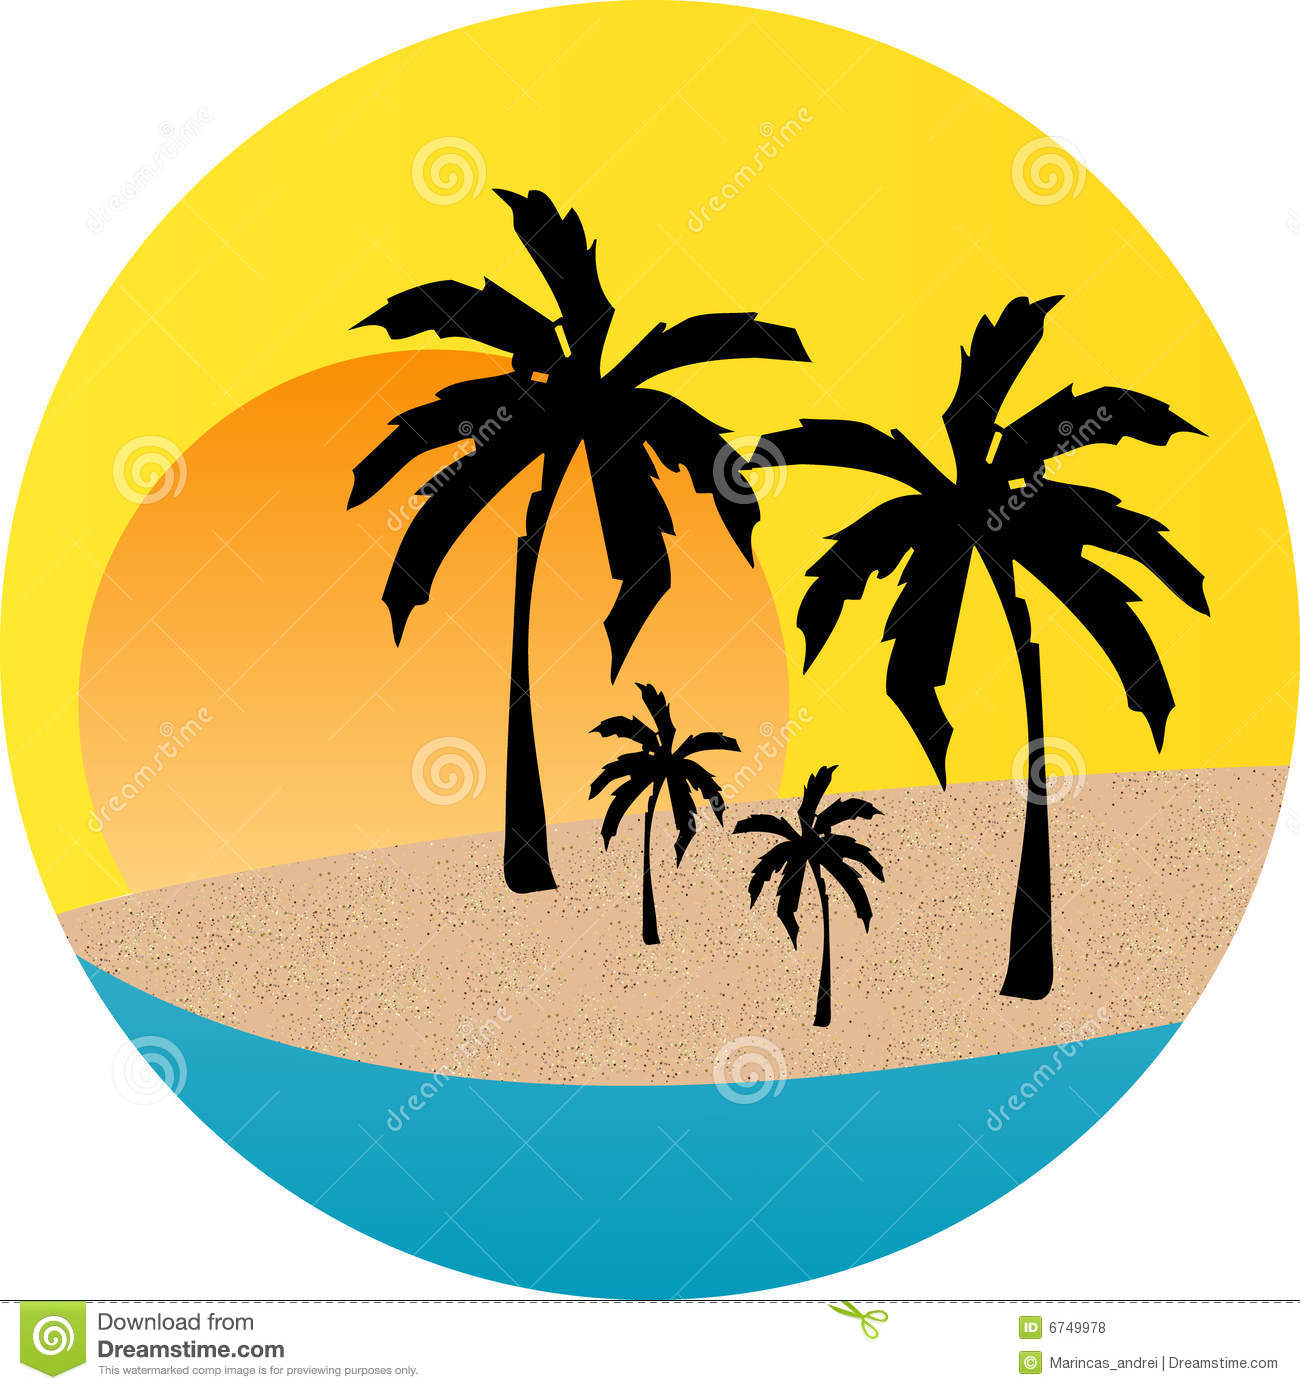 sunset beach label stock vector illustration of tropical 6749978 rh dreamstime com free sunset clipart images palm tree sunset clipart free